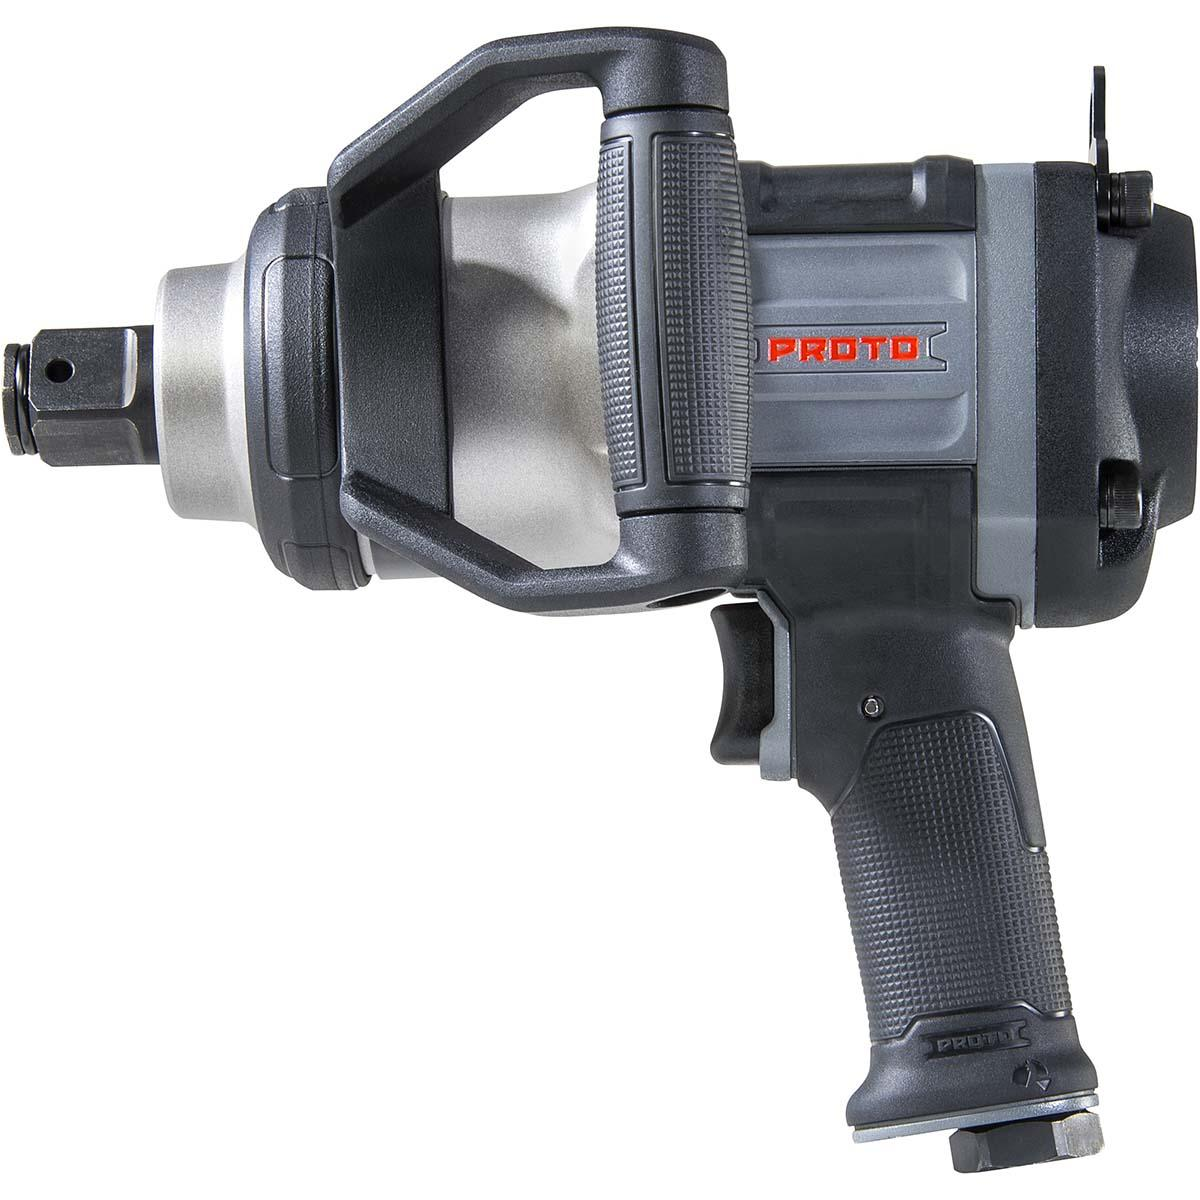 "Proto® 1"" Drive Pistol Grip Air Impact Wrench"